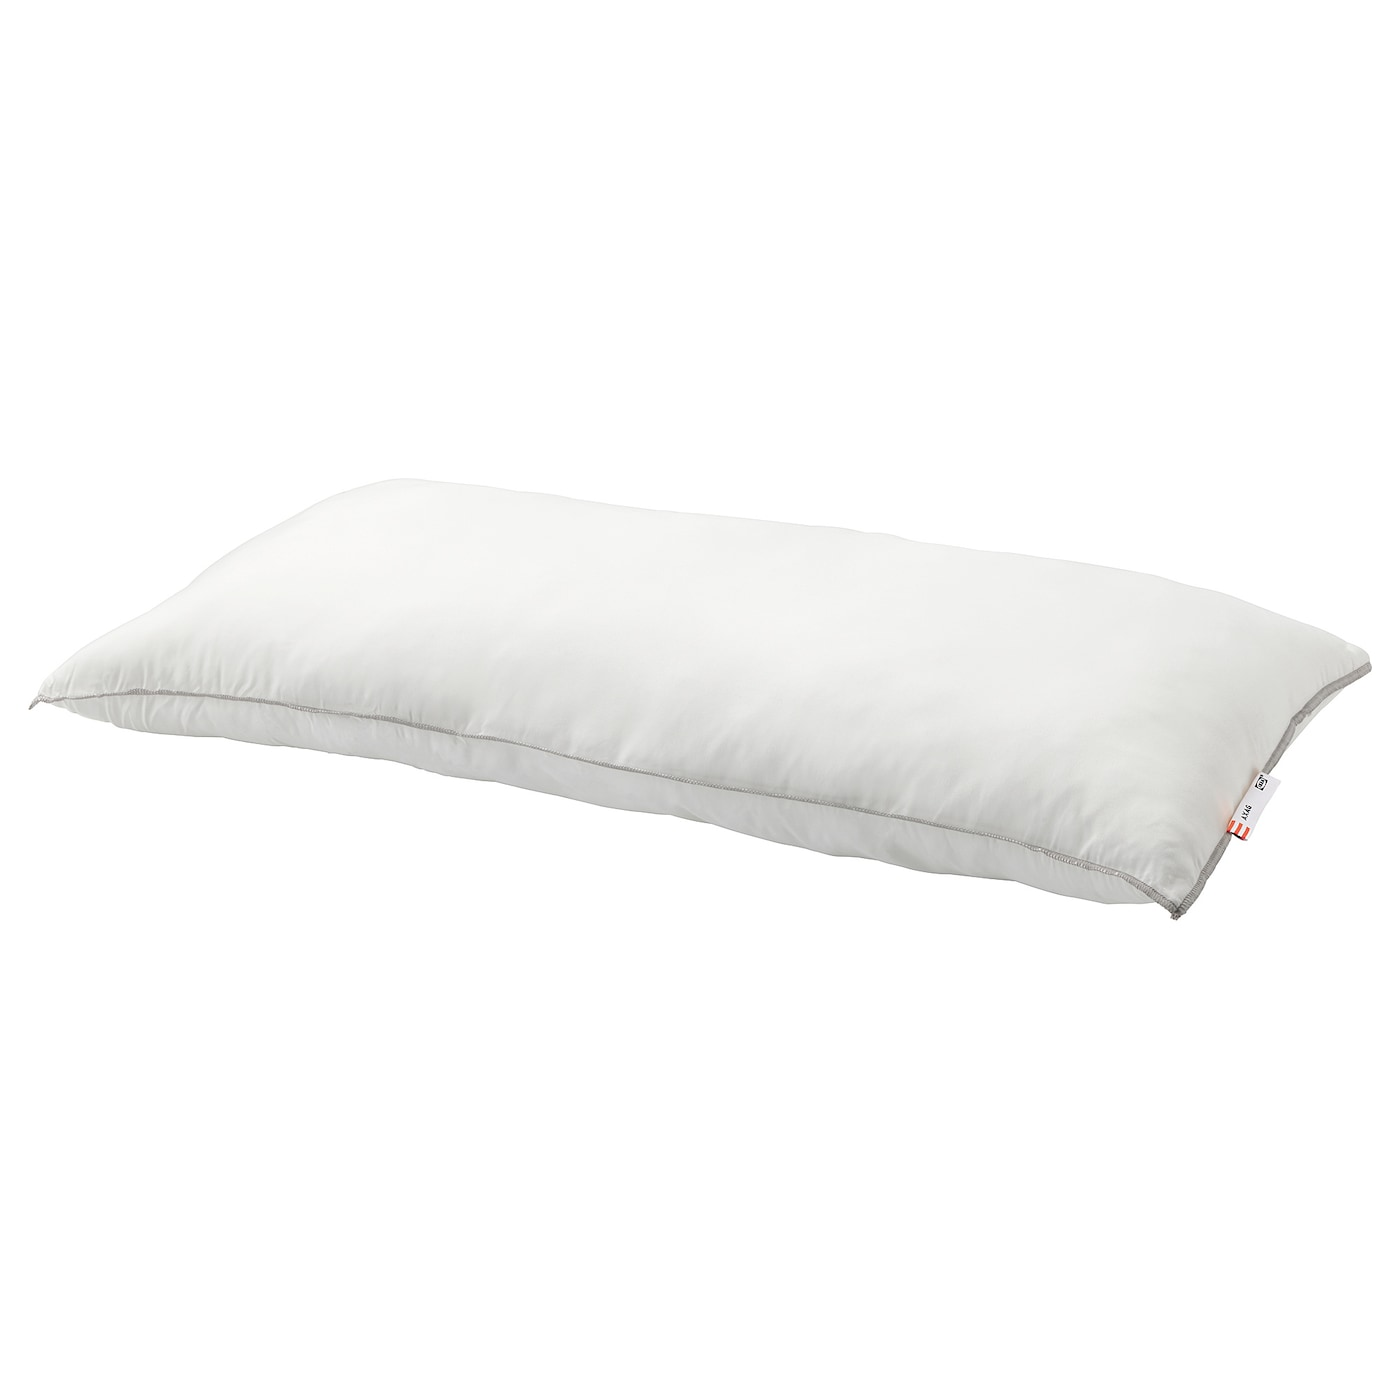 IKEA AXAG pillow, firmer A firm, easy-care pillow in brushed microfibre with a ball fibre filling.